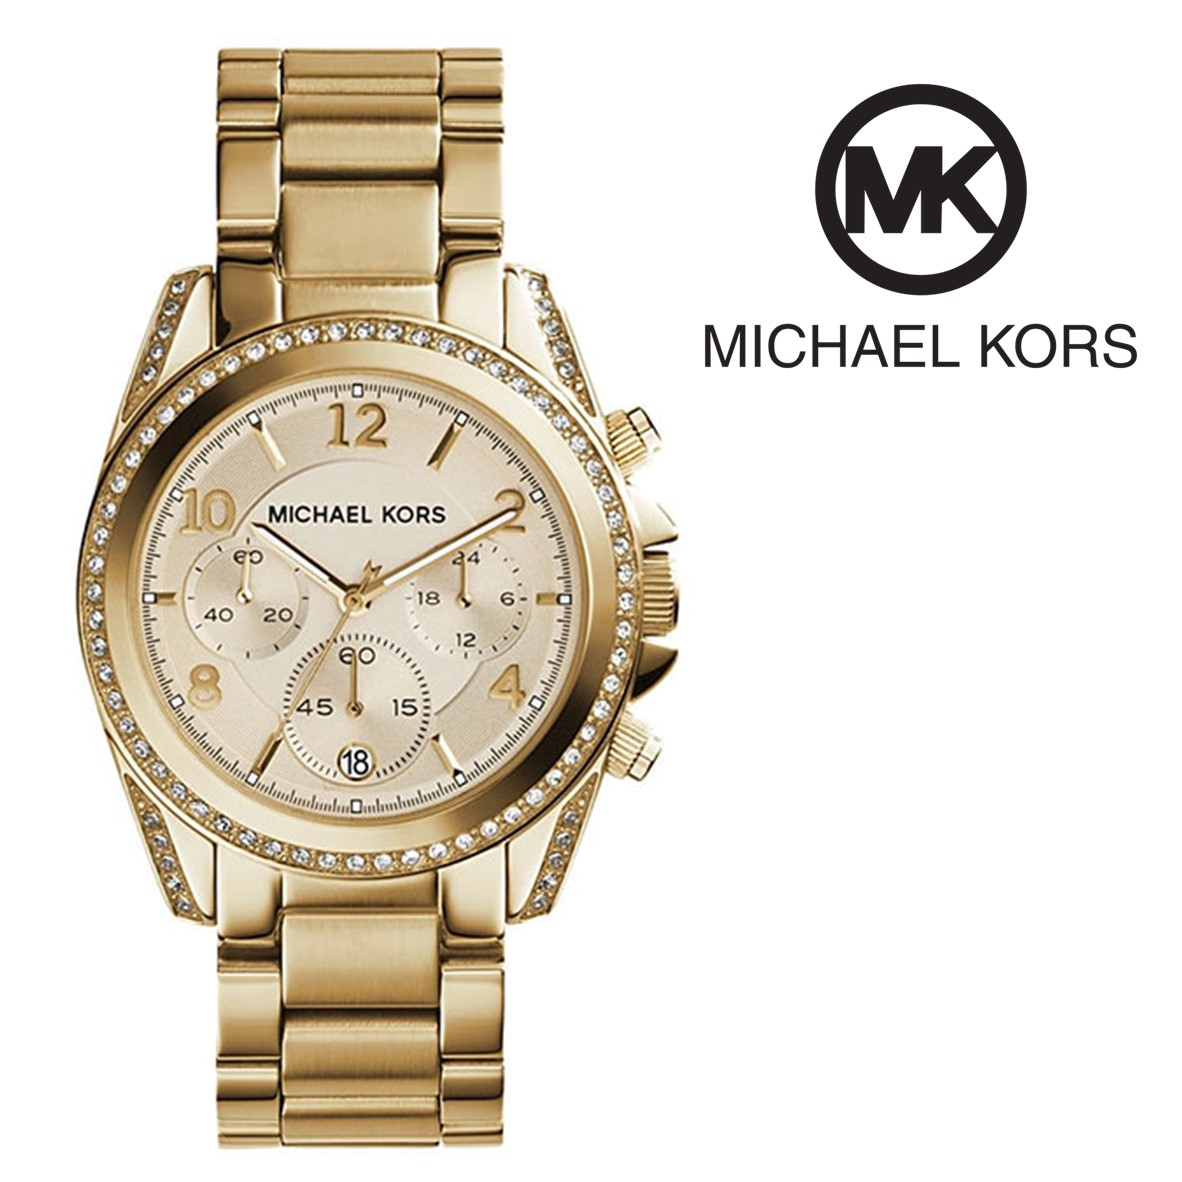 Relógio Michael Kors® Blair Glitz Dourado Cronógrafo - You Like It c89ba9b142